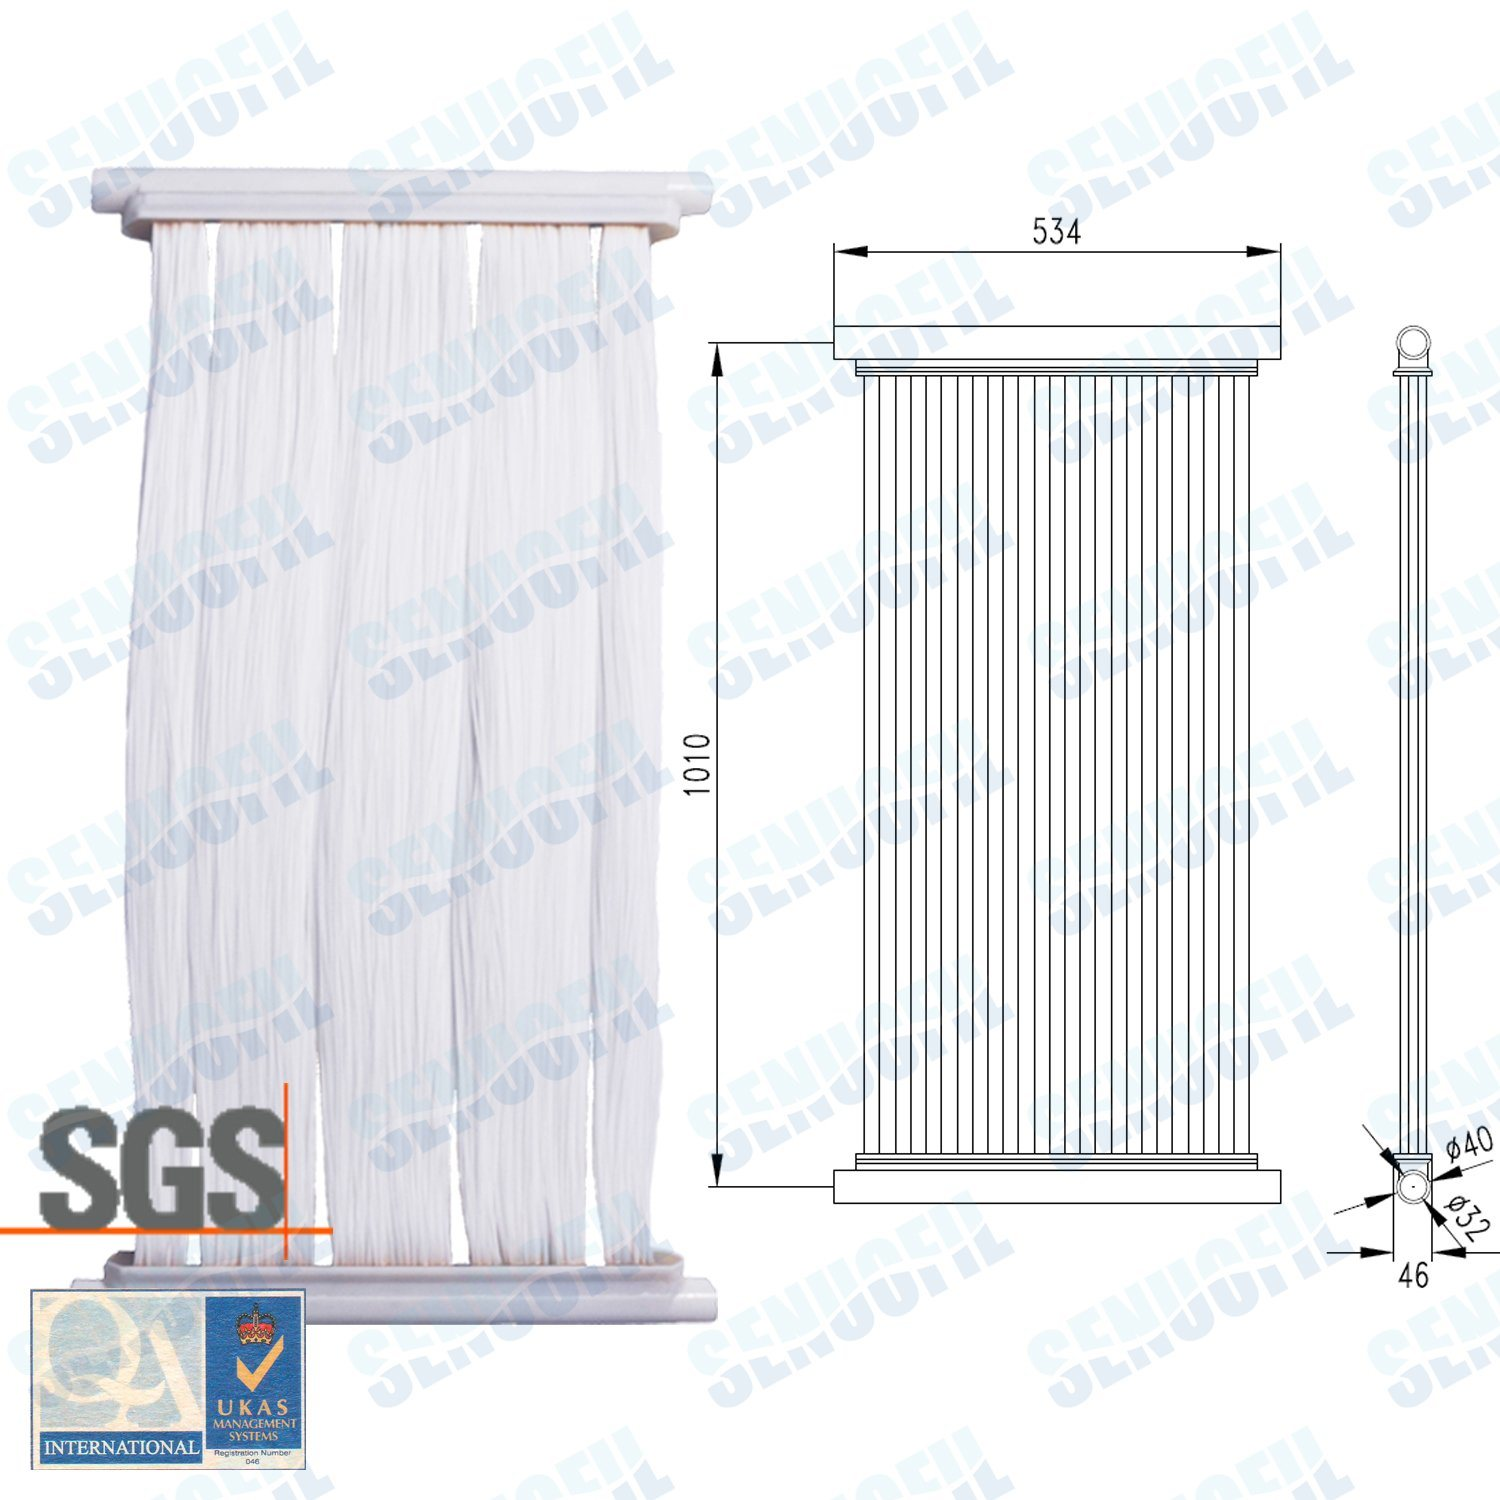 Submerged Curtain Mbr Membrane Module for Wasteater Treatment (SN-MBRI)